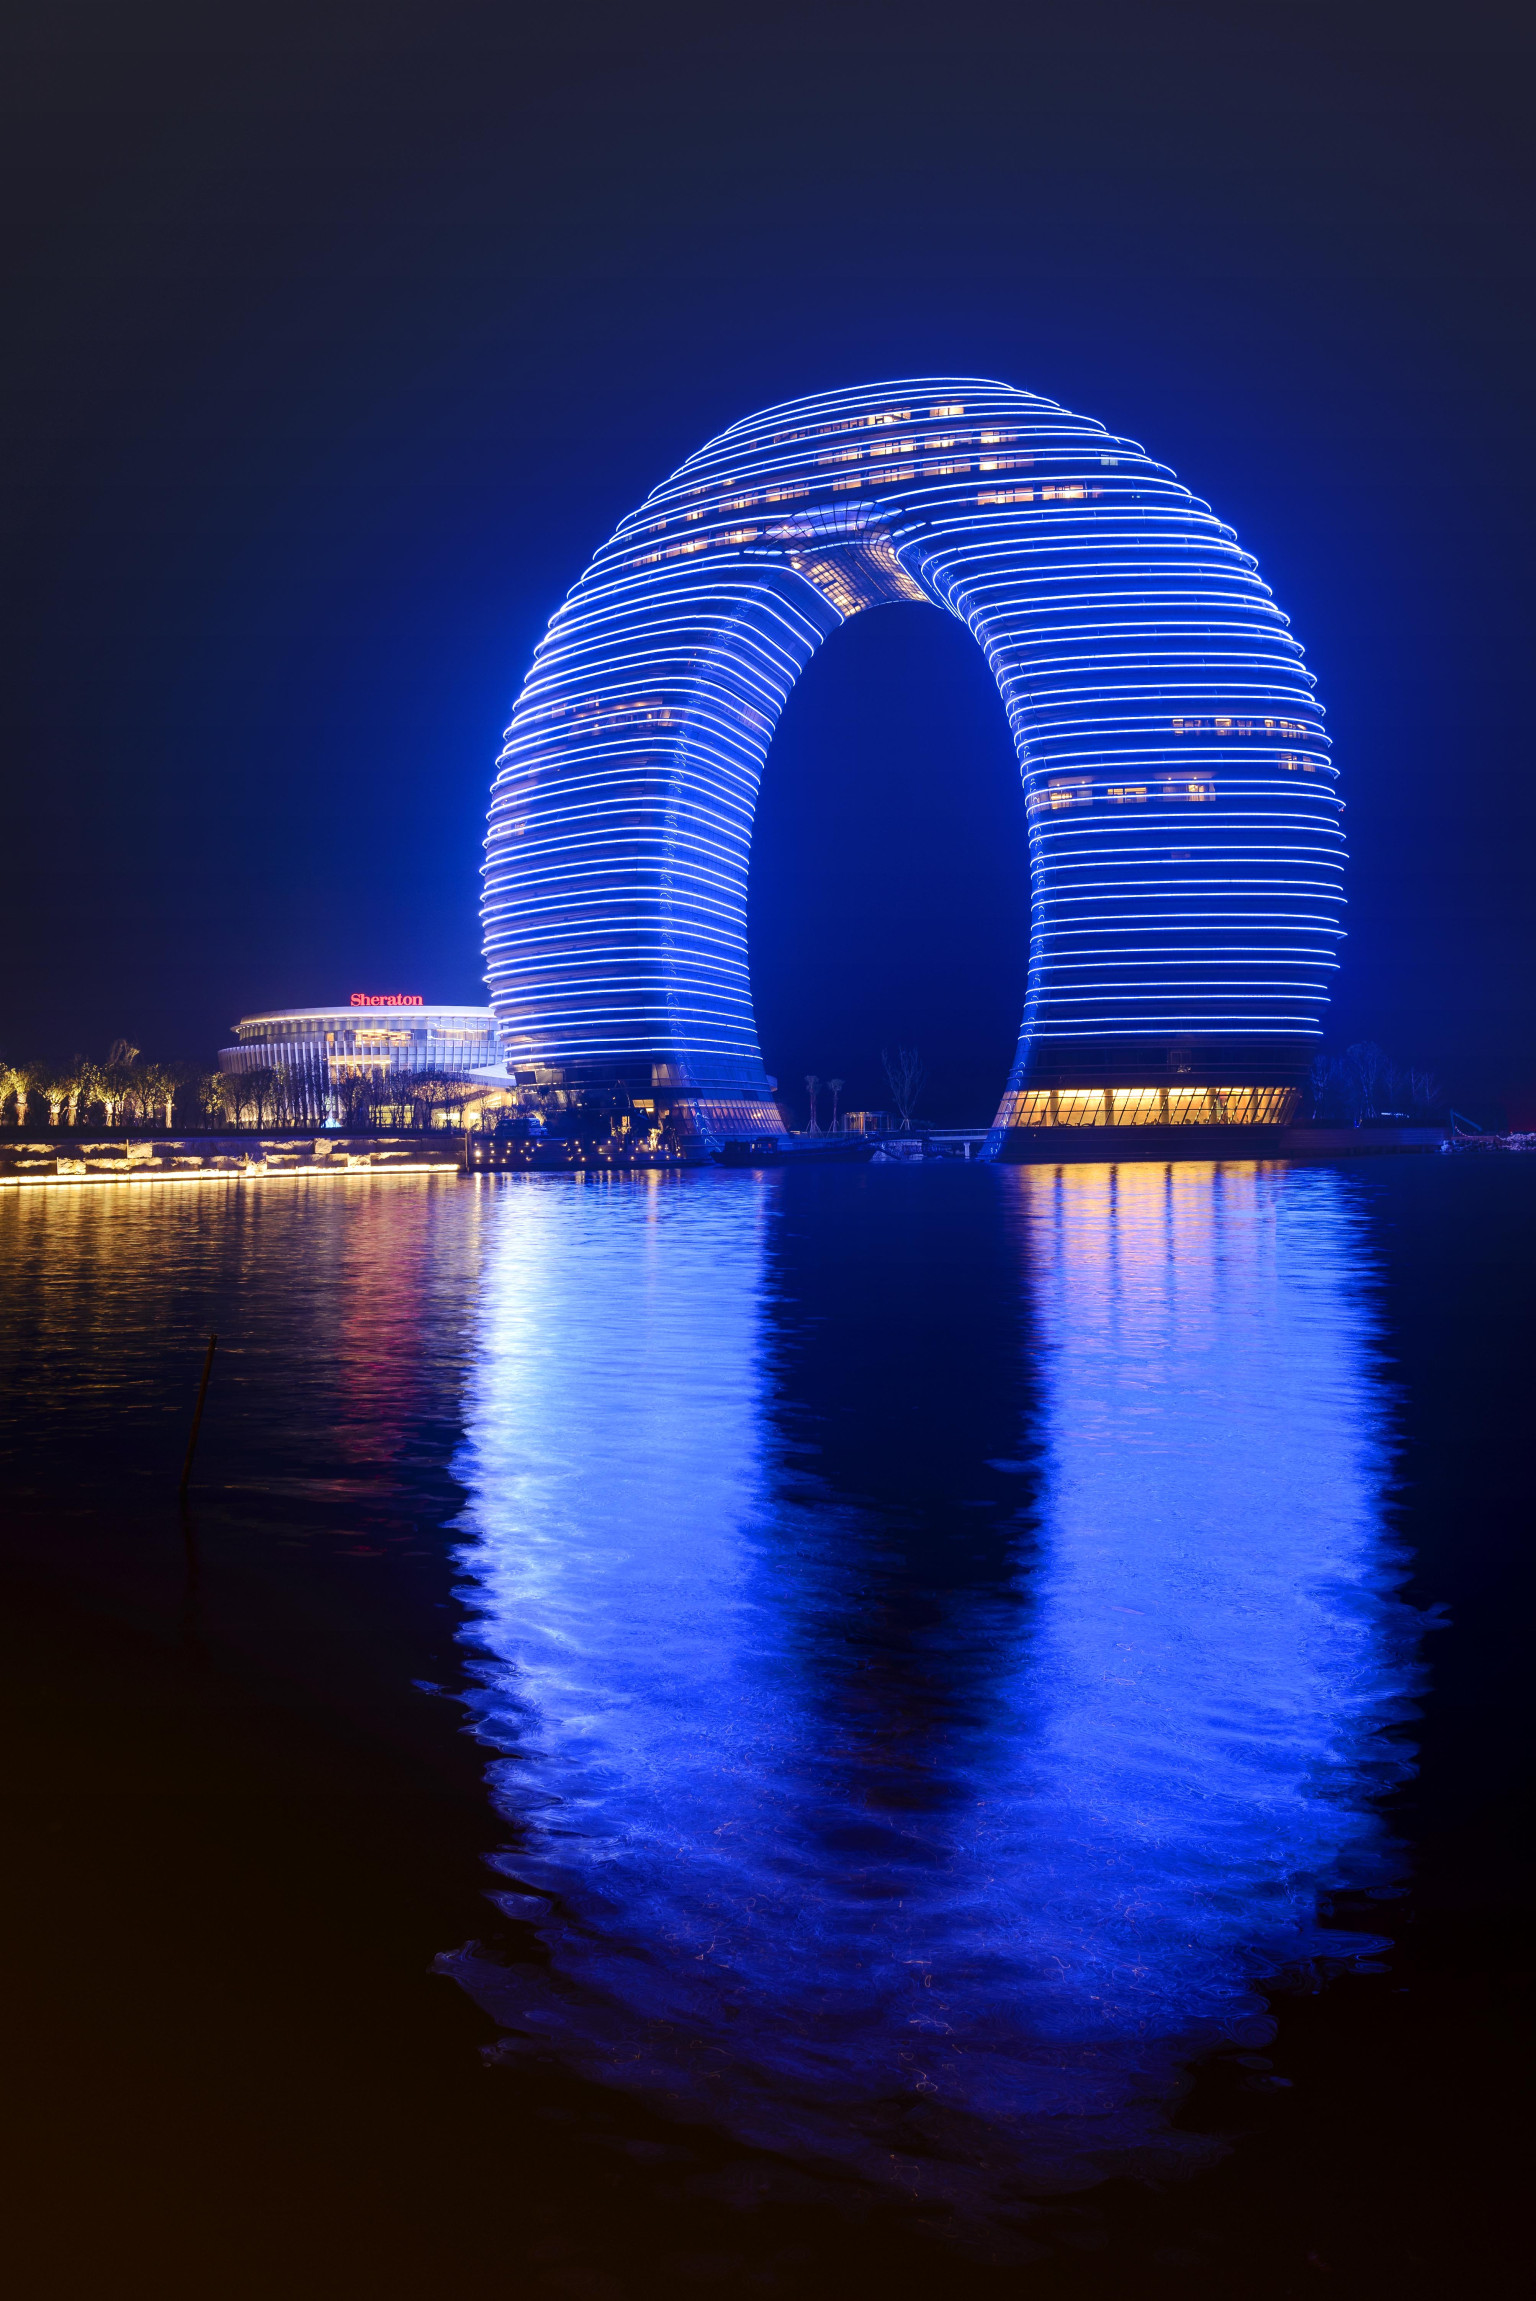 Huzhou China  city photos gallery : Sheraton Huzhou Hot Spring Resort, China's New 'Horseshoe Hotel'